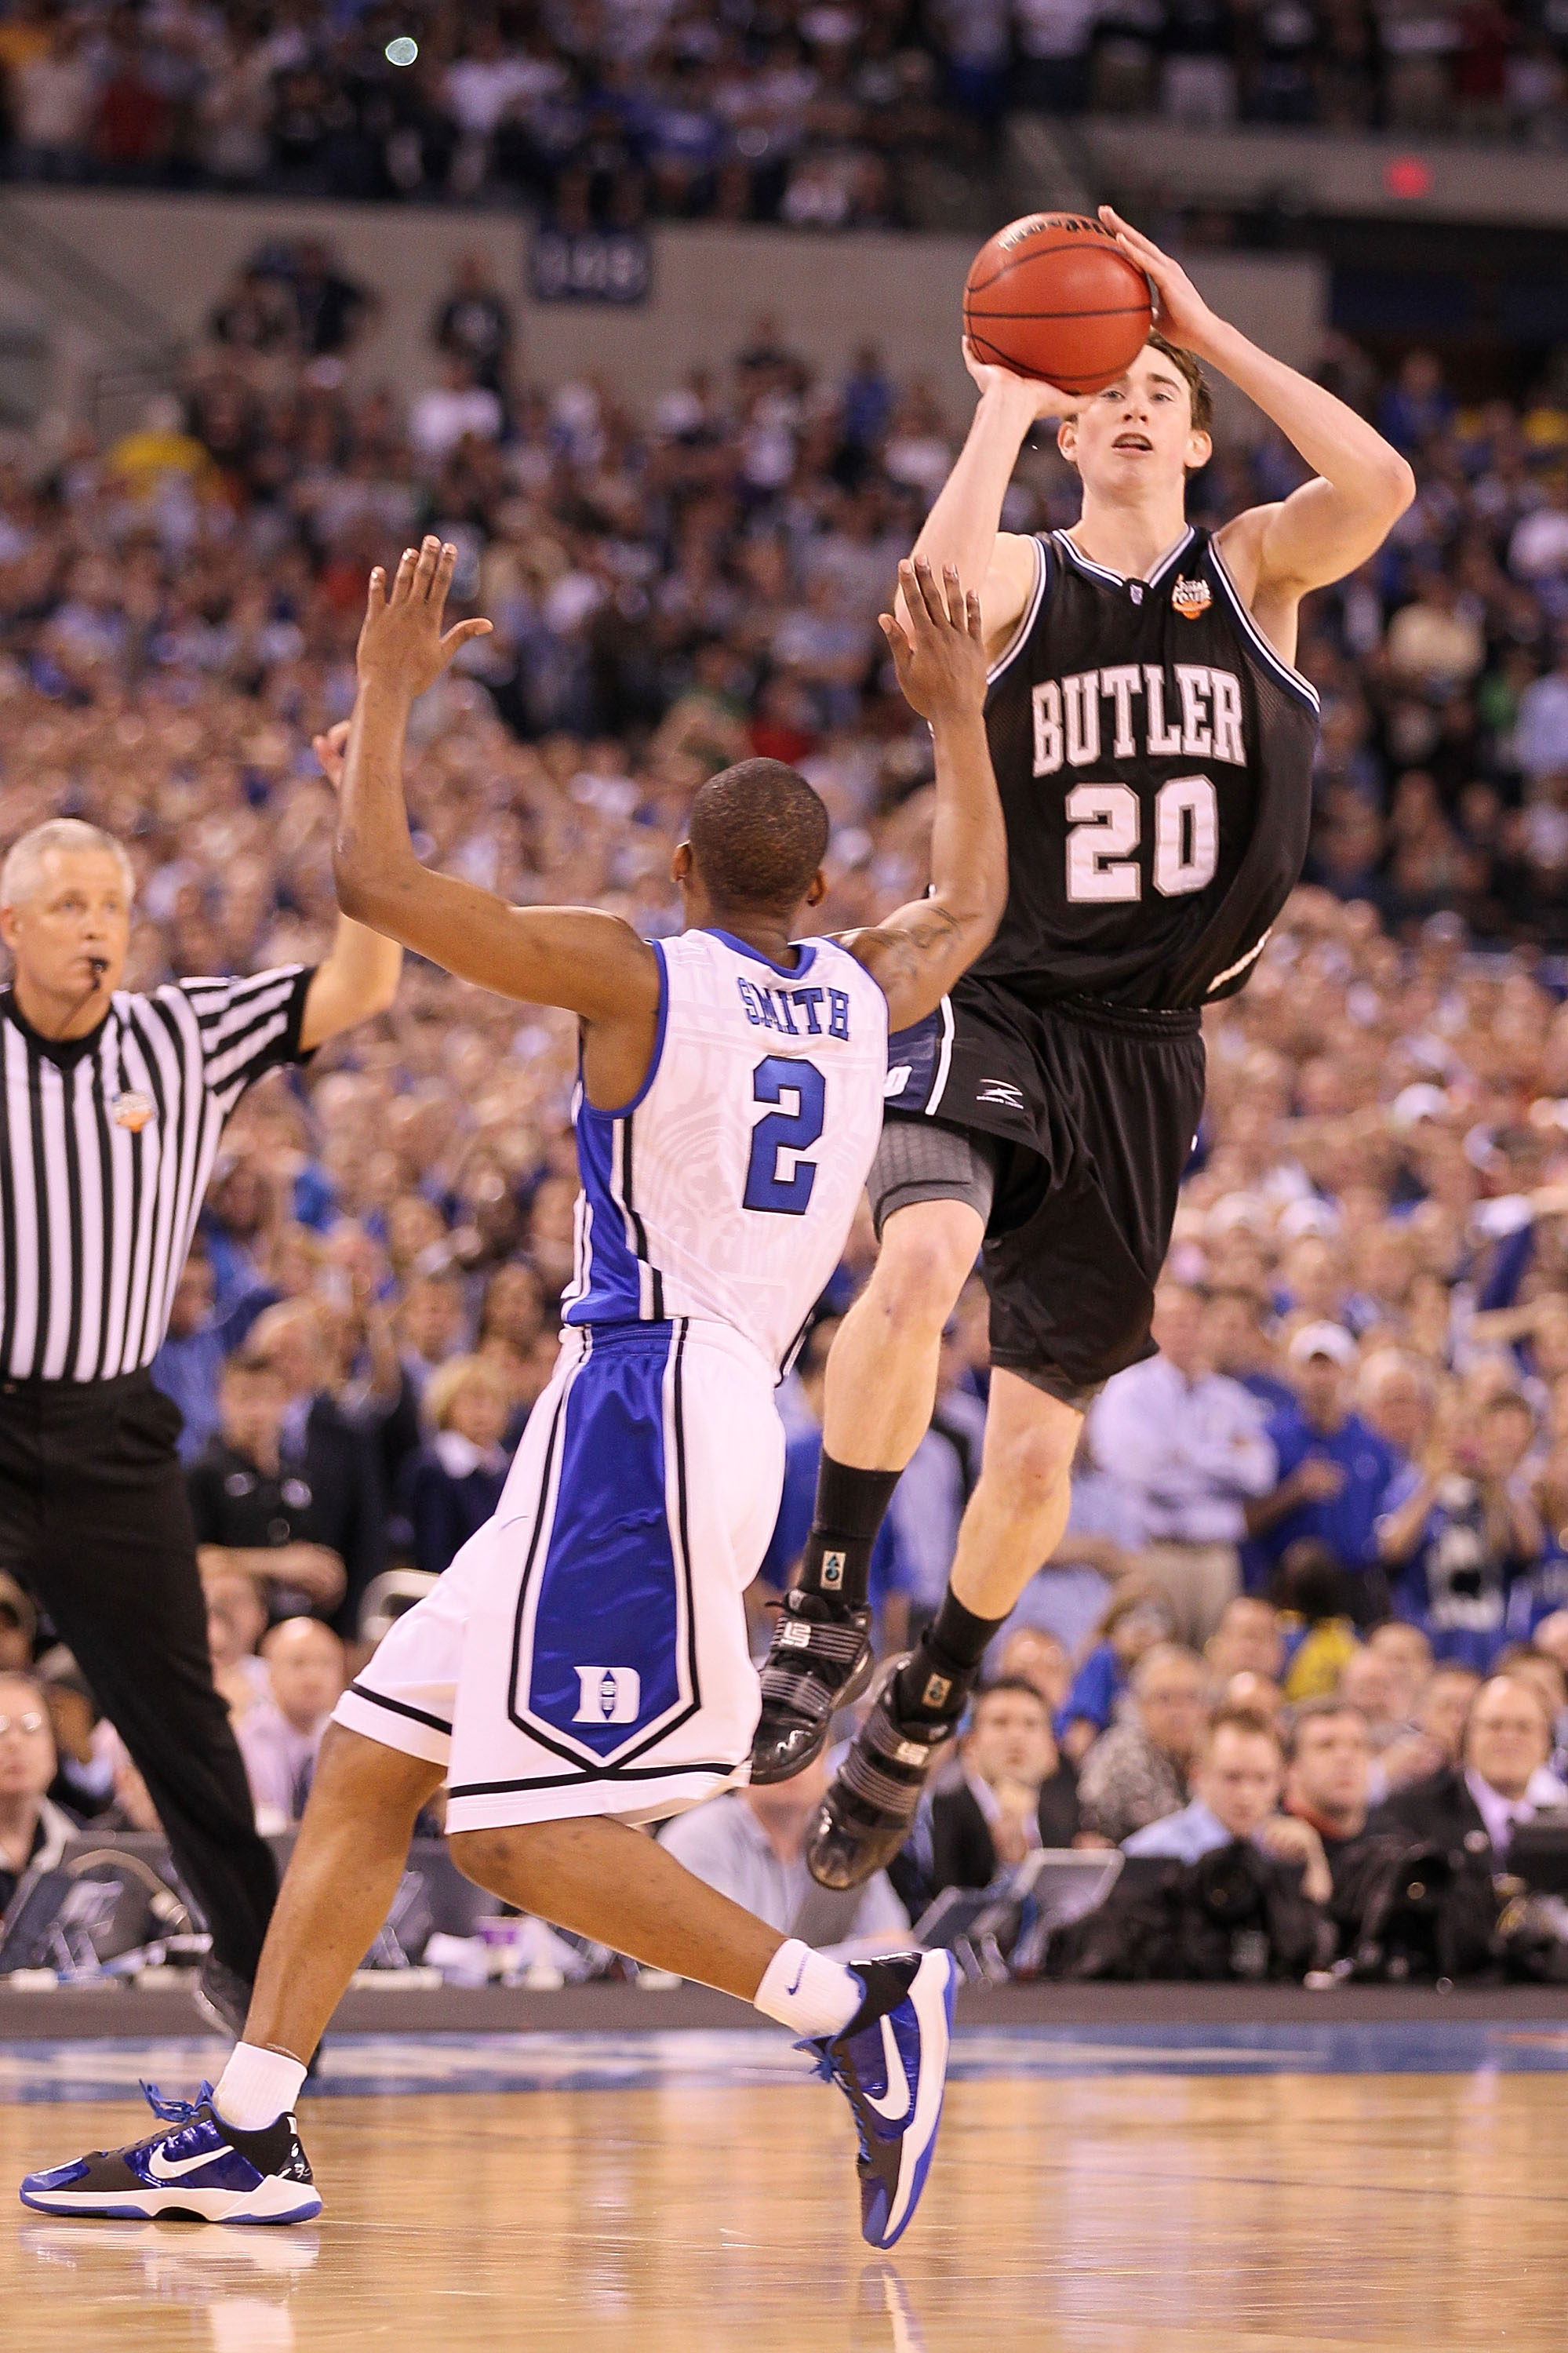 INDIANAPOLIS - APRIL 05:  Gordon Hayward #20 of the Butler Bulldogs shoots a last second shot from half court over Nolan Smith #2 of the Duke Blue Devils that missed during the 2010 NCAA Division I Men's Basketball National Championship game at Lucas Oil